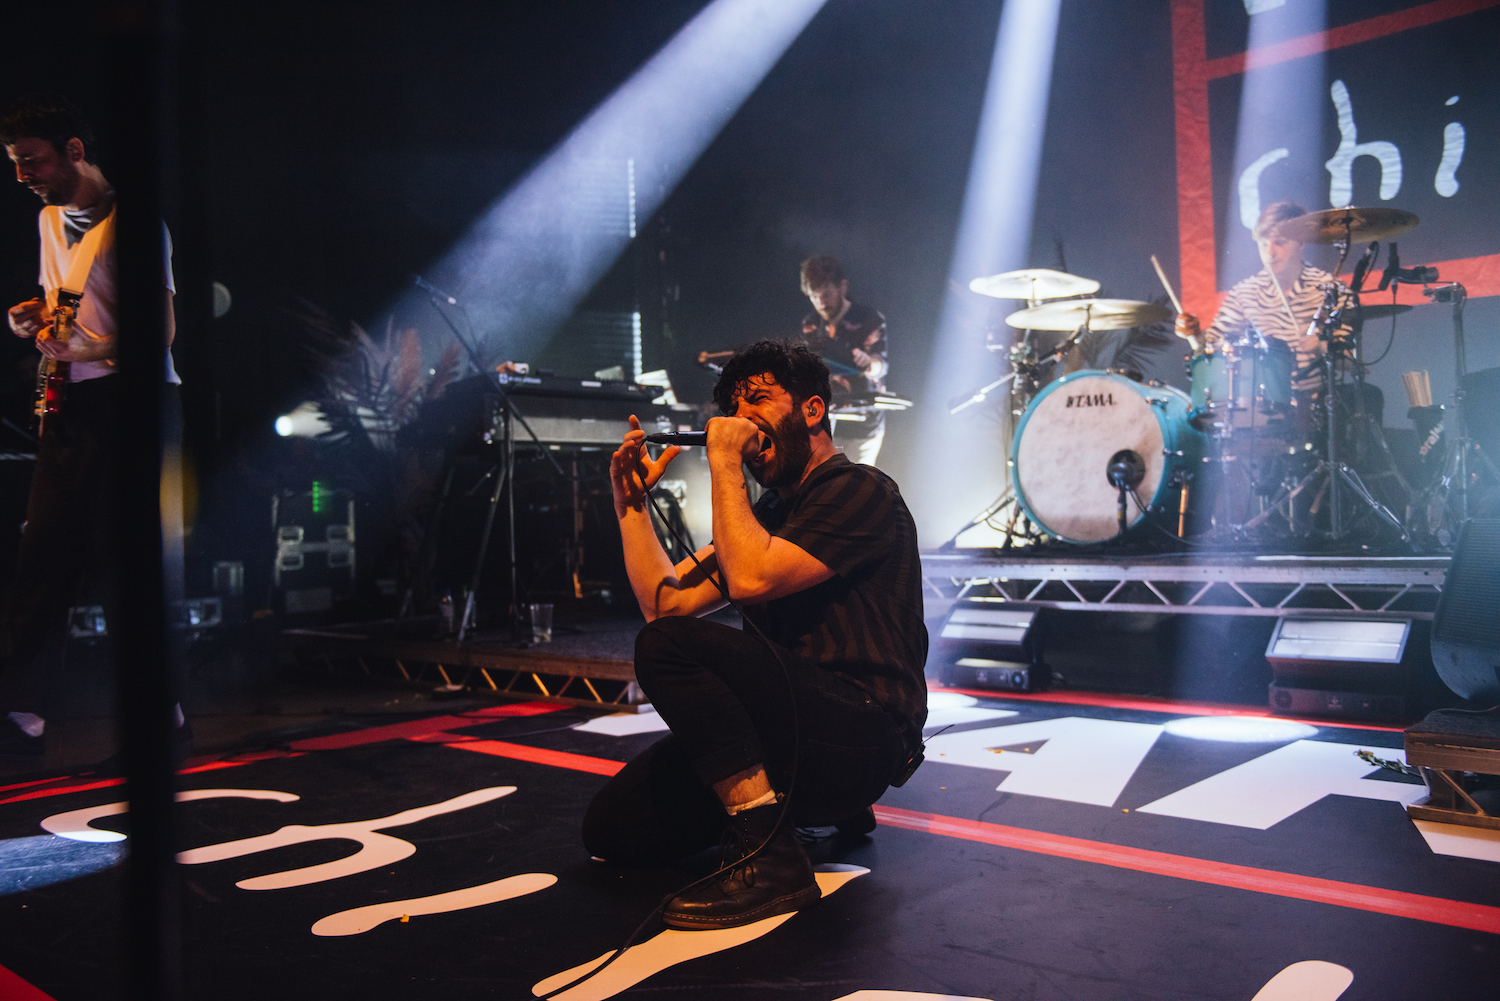 Live Review: Foals at O2 Shepherd's Bush Empire, London, 17/02/2020 | Gigwise